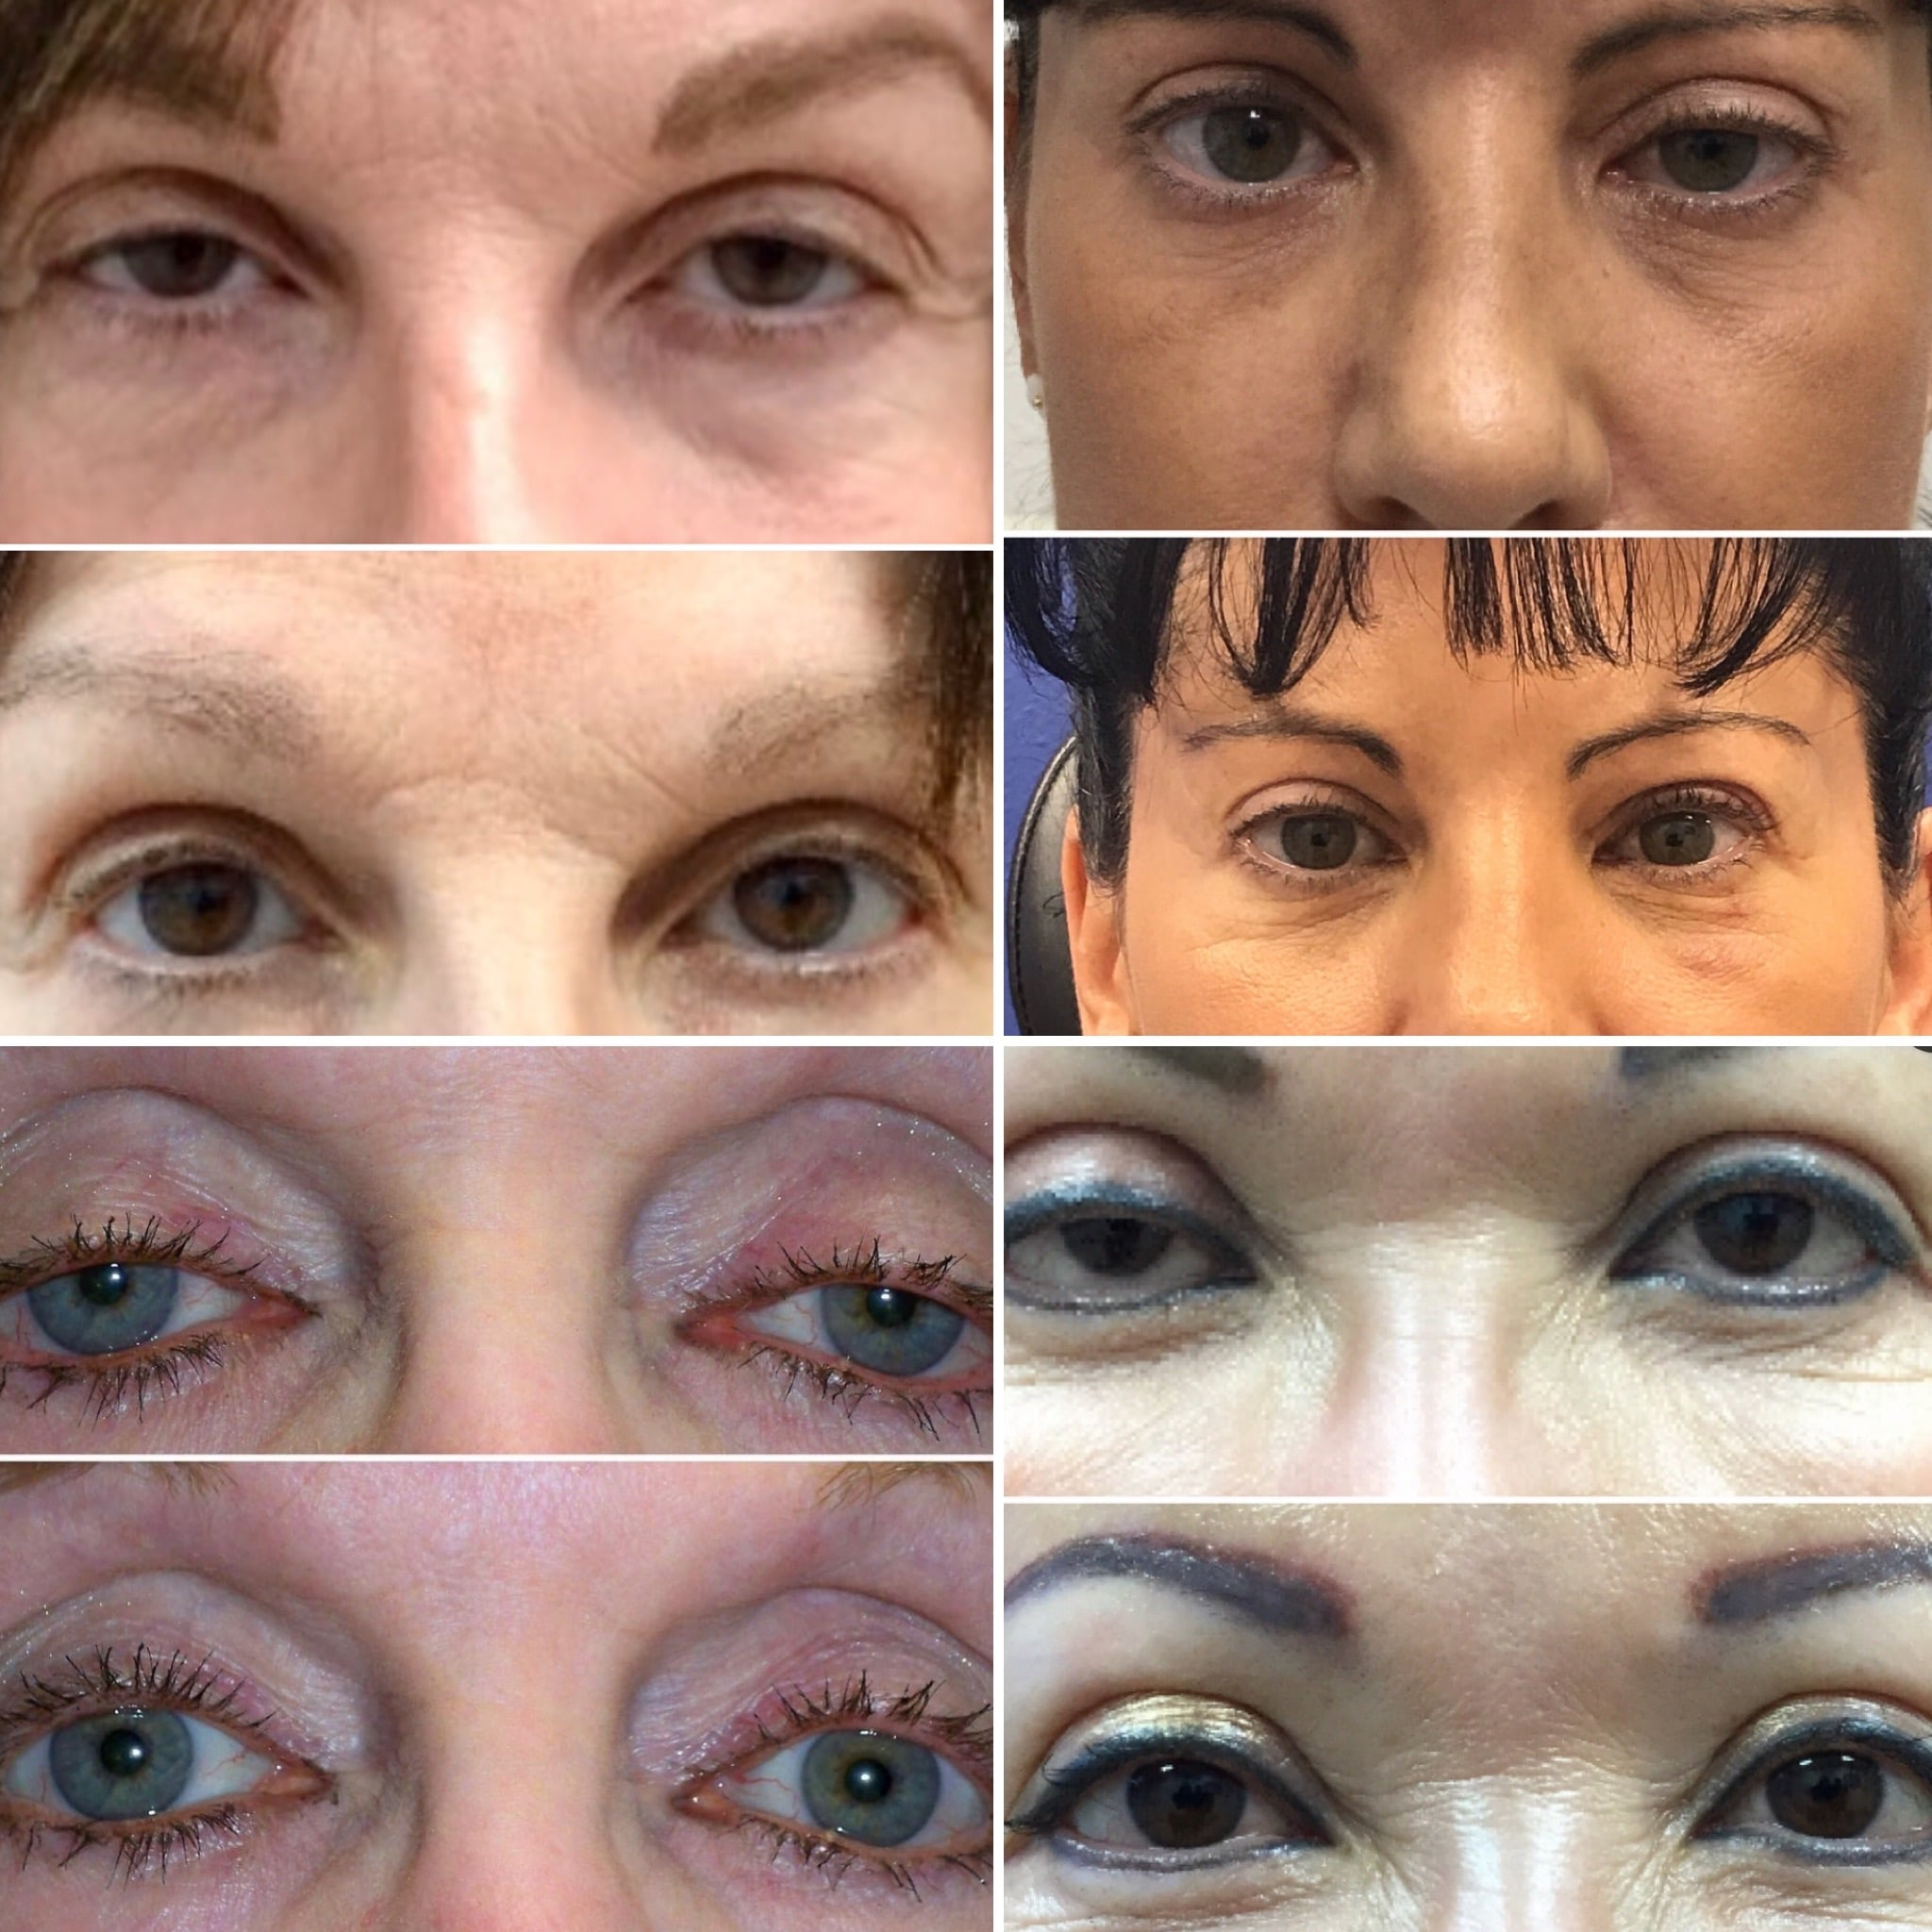 Botched Eyelid Surgery